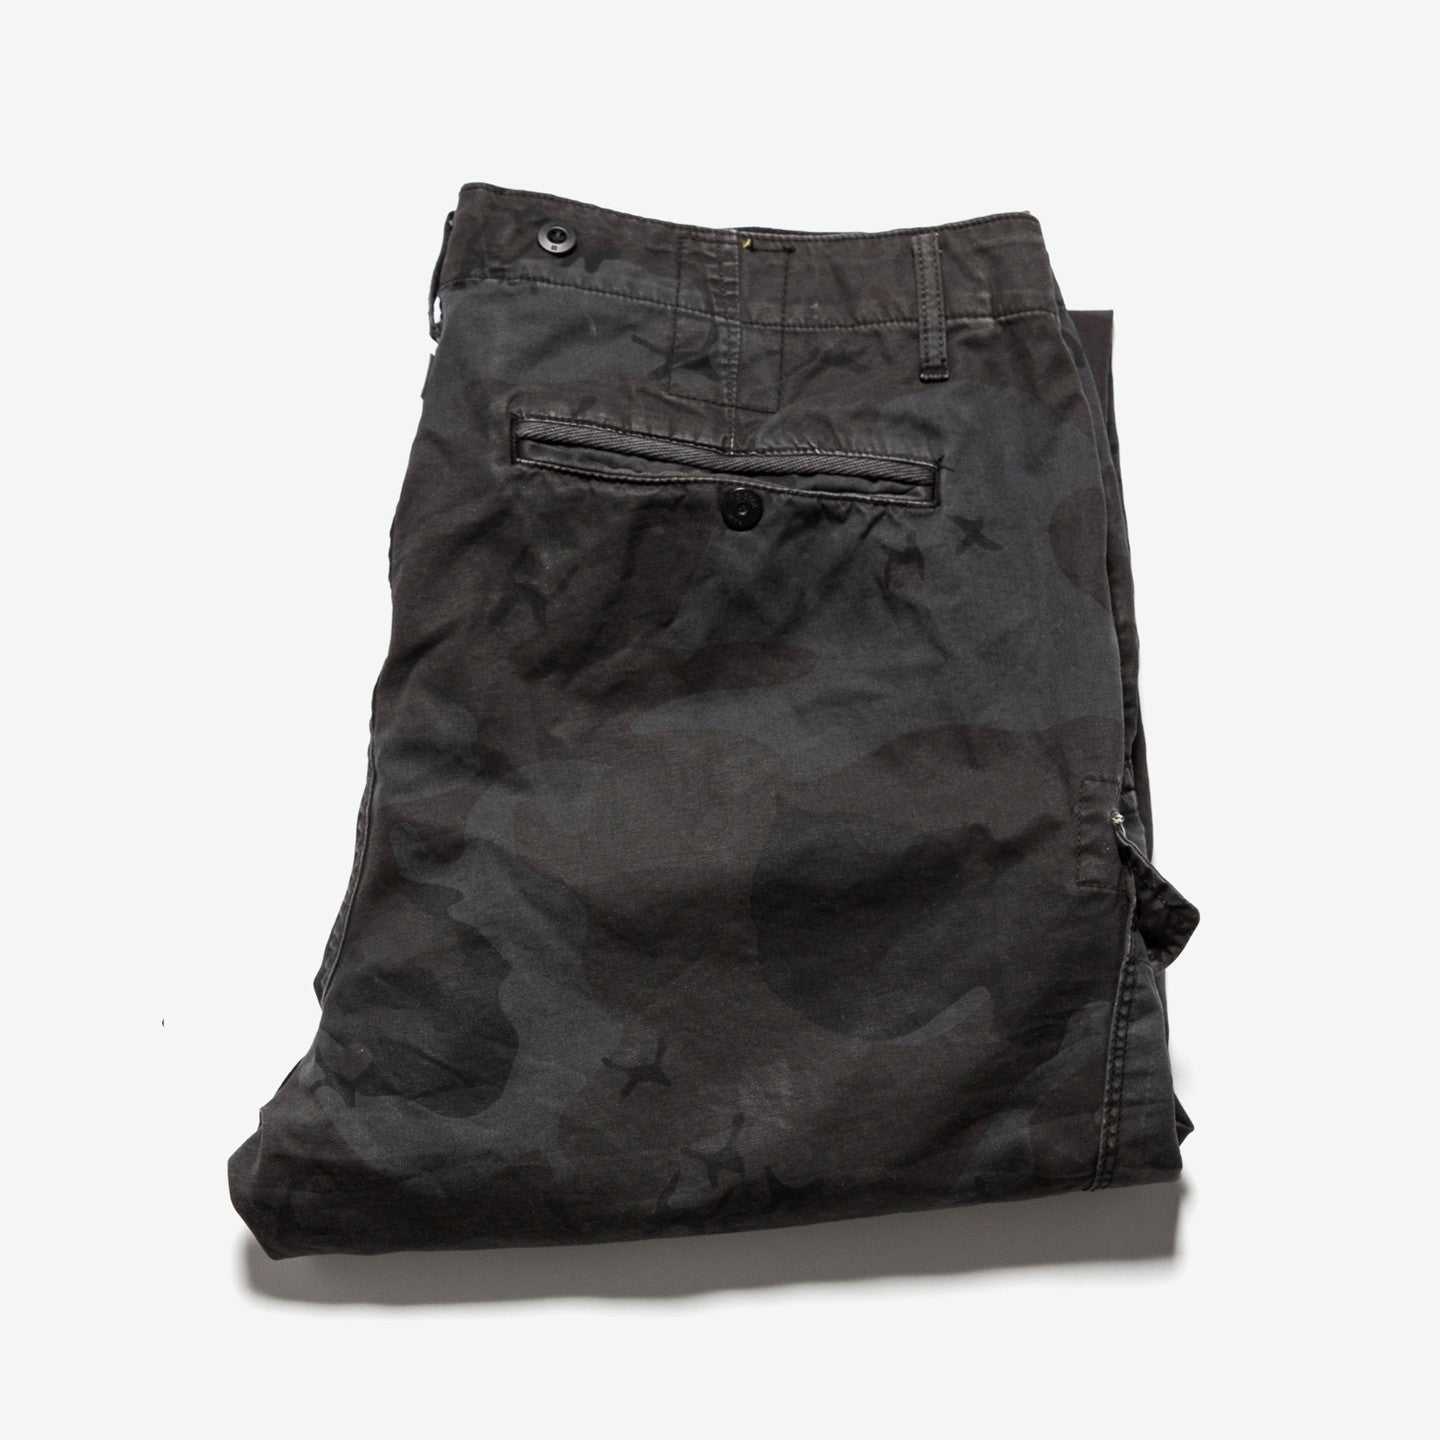 G-Star Raw / Military Raw Cargo Pants